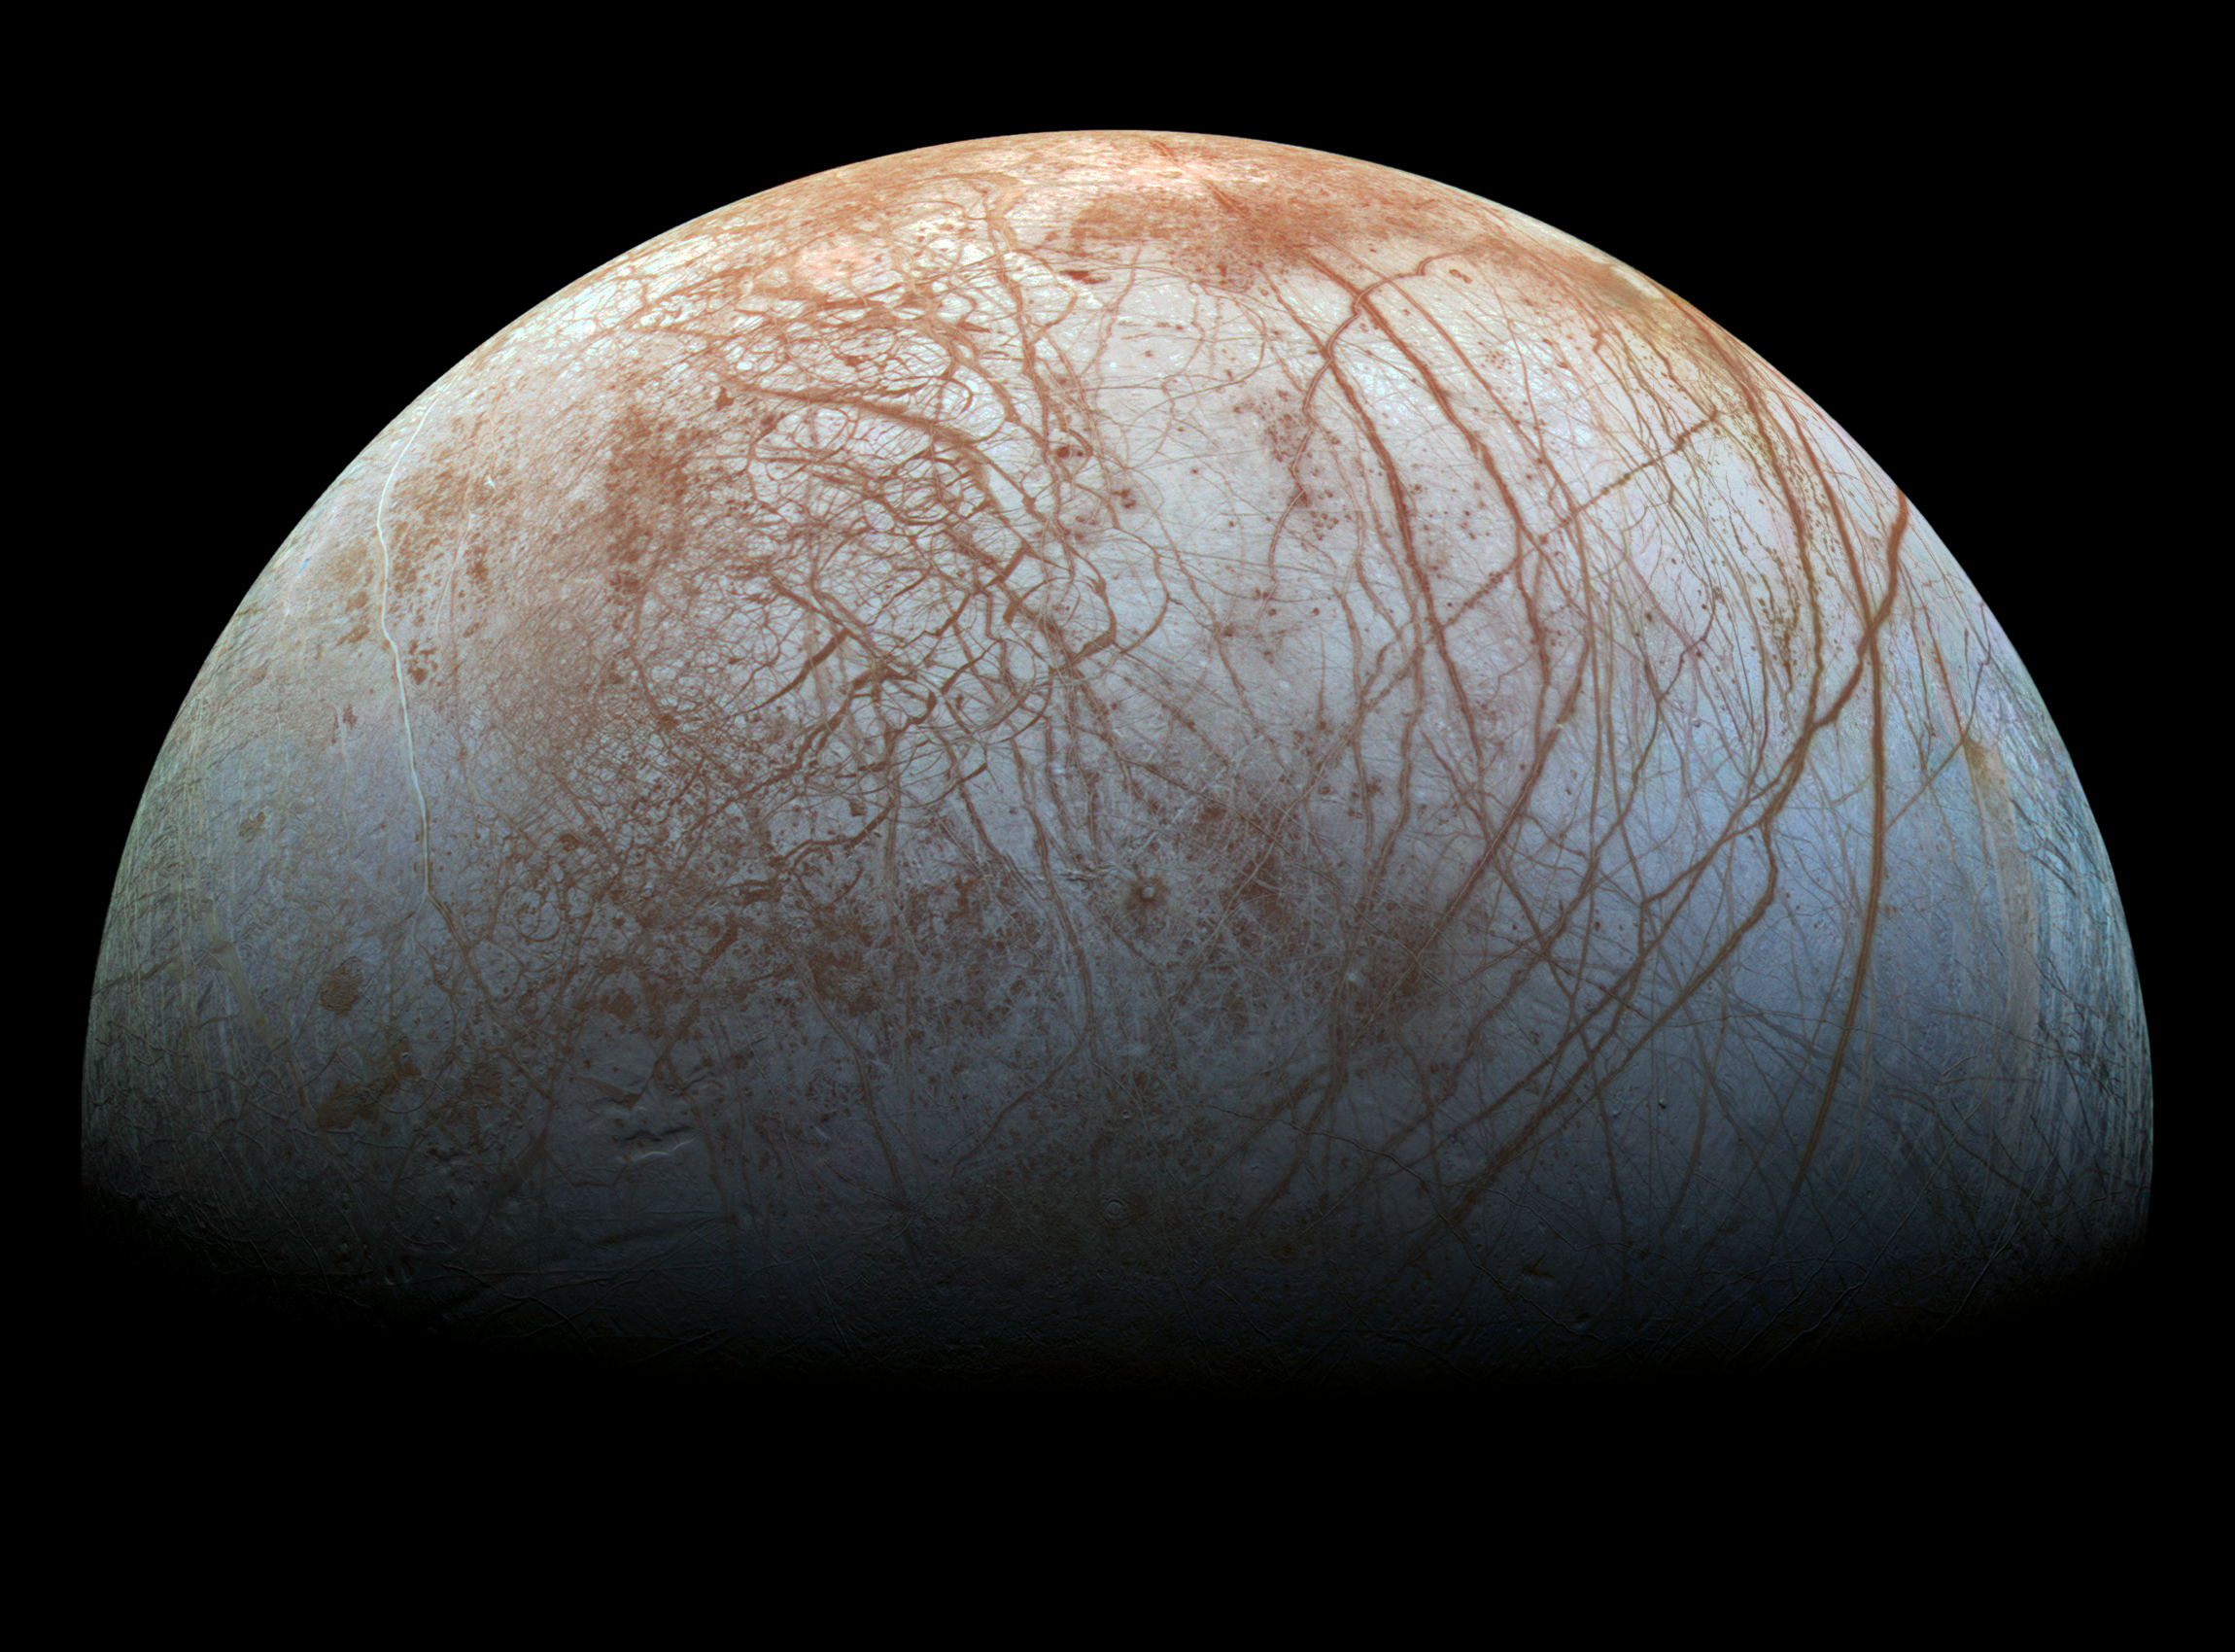 Europa is an ocean world covered by an icy crust.